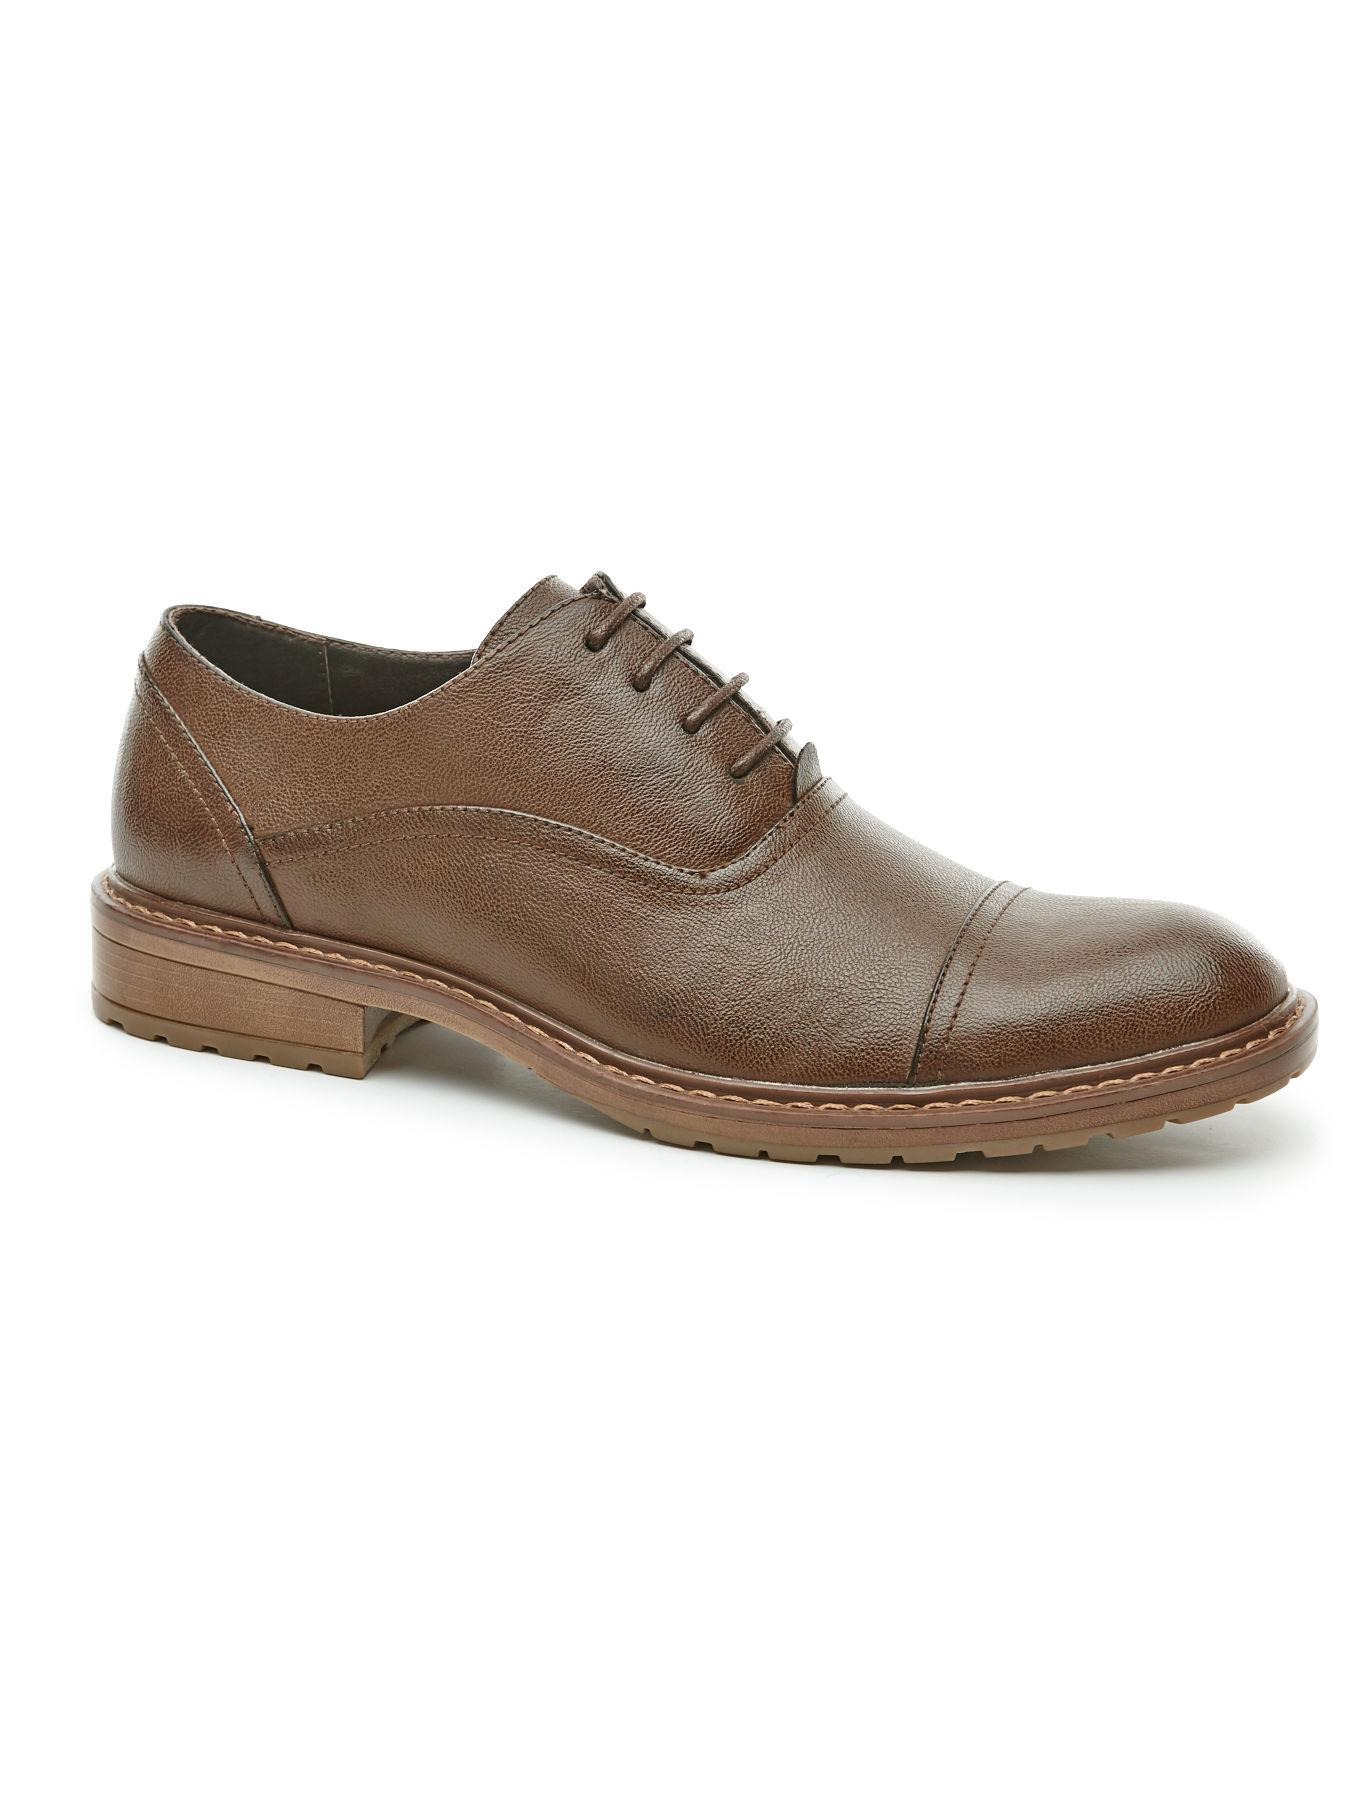 perry ellis jess dress shoe in brown for lyst